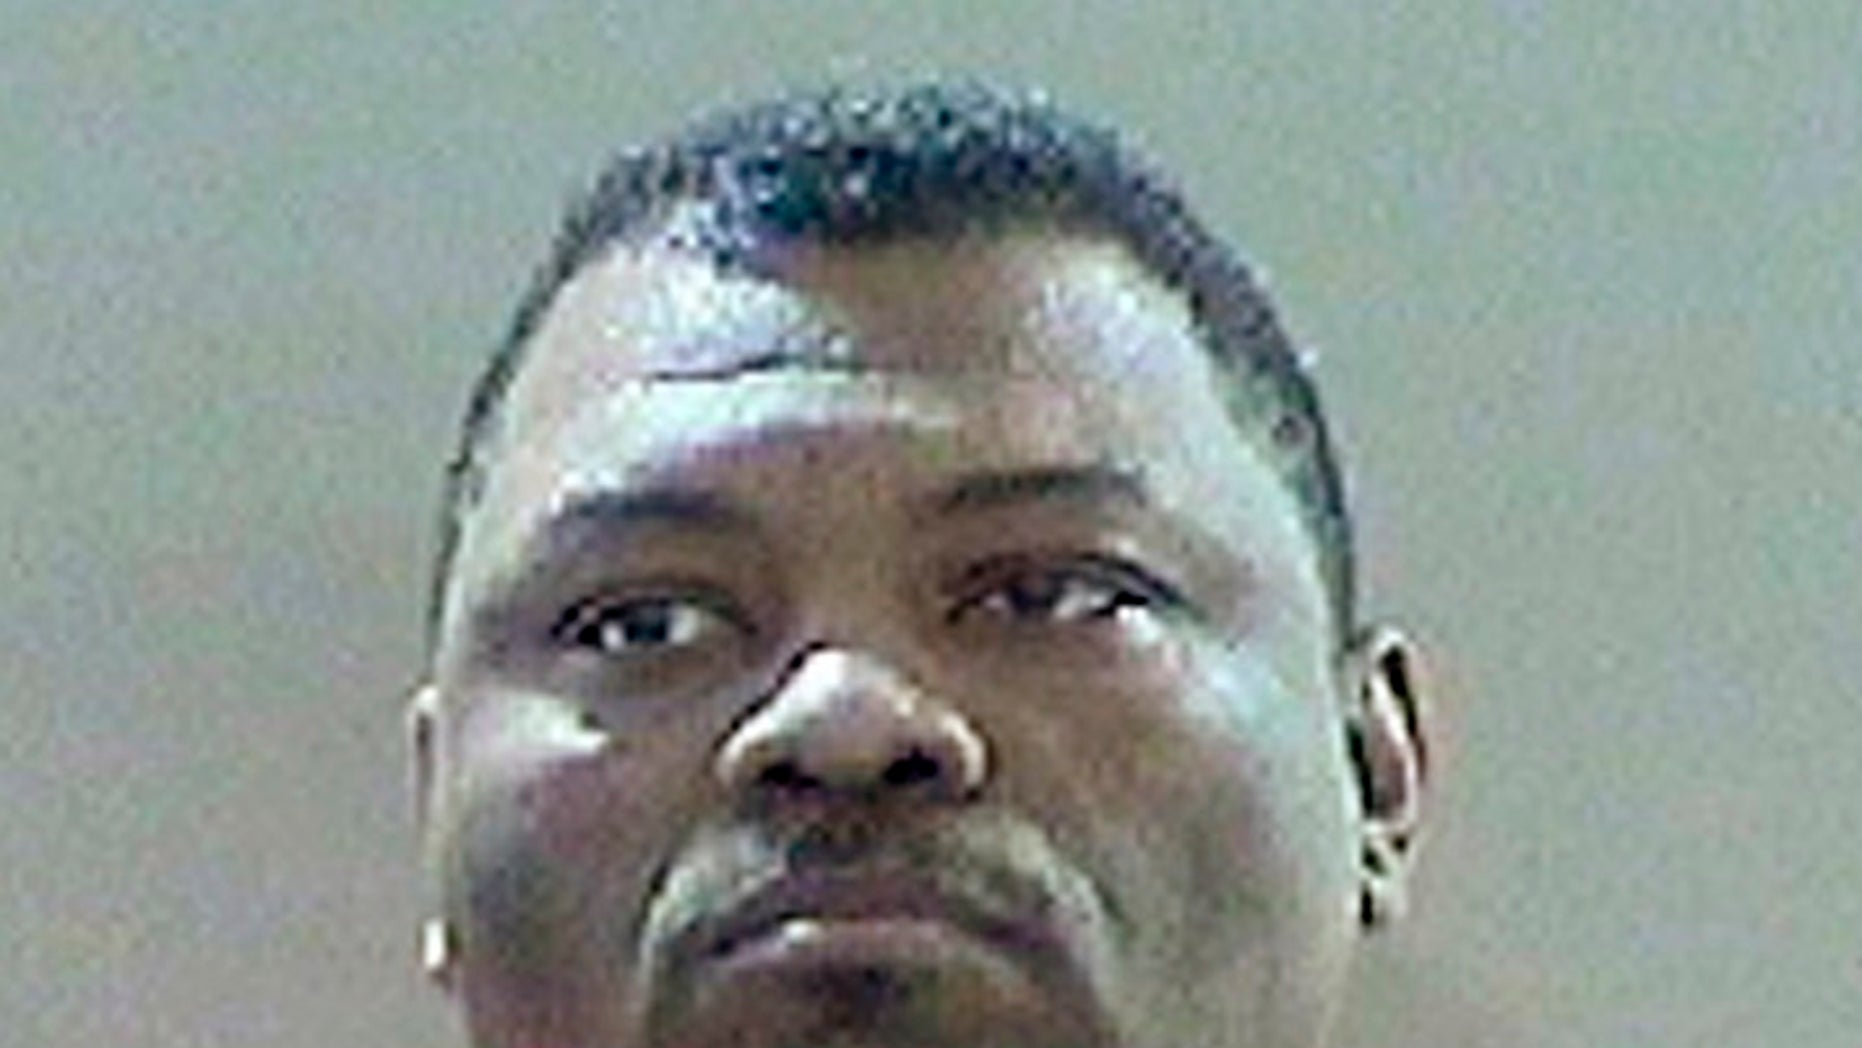 Albert Weathers of Sterling Heights,Mich., was charged Dec. 10, 2018, with murder in the death of Kelly Stough, who was found dead on a Detroit street Friday.